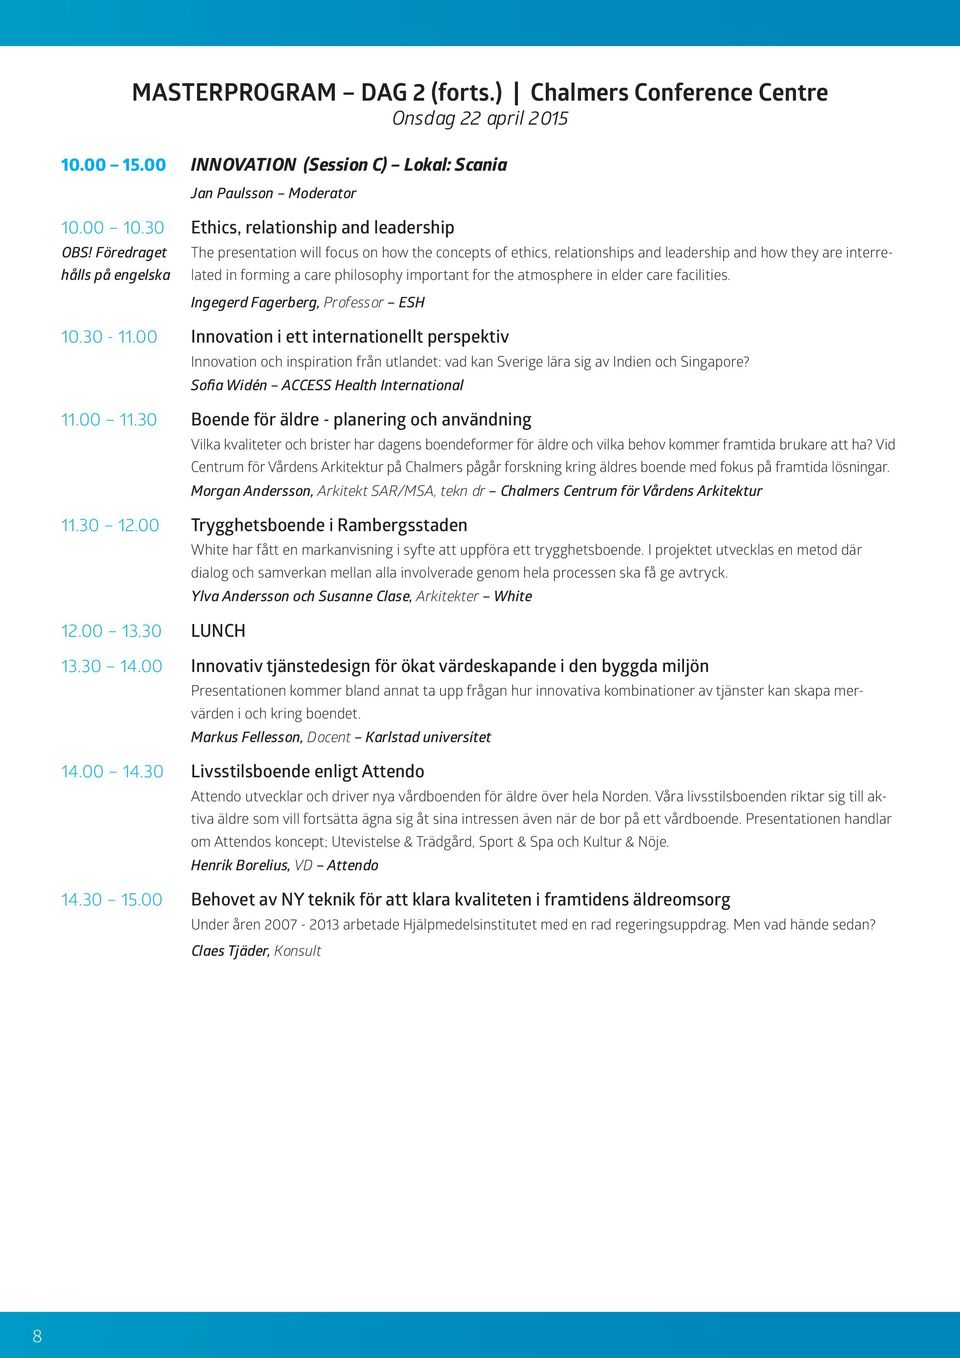 Föredraget The presentation will focus on how the concepts of ethics, relationships and leadership and how they are interrelated hålls på engelska in forming a care philosophy important for the